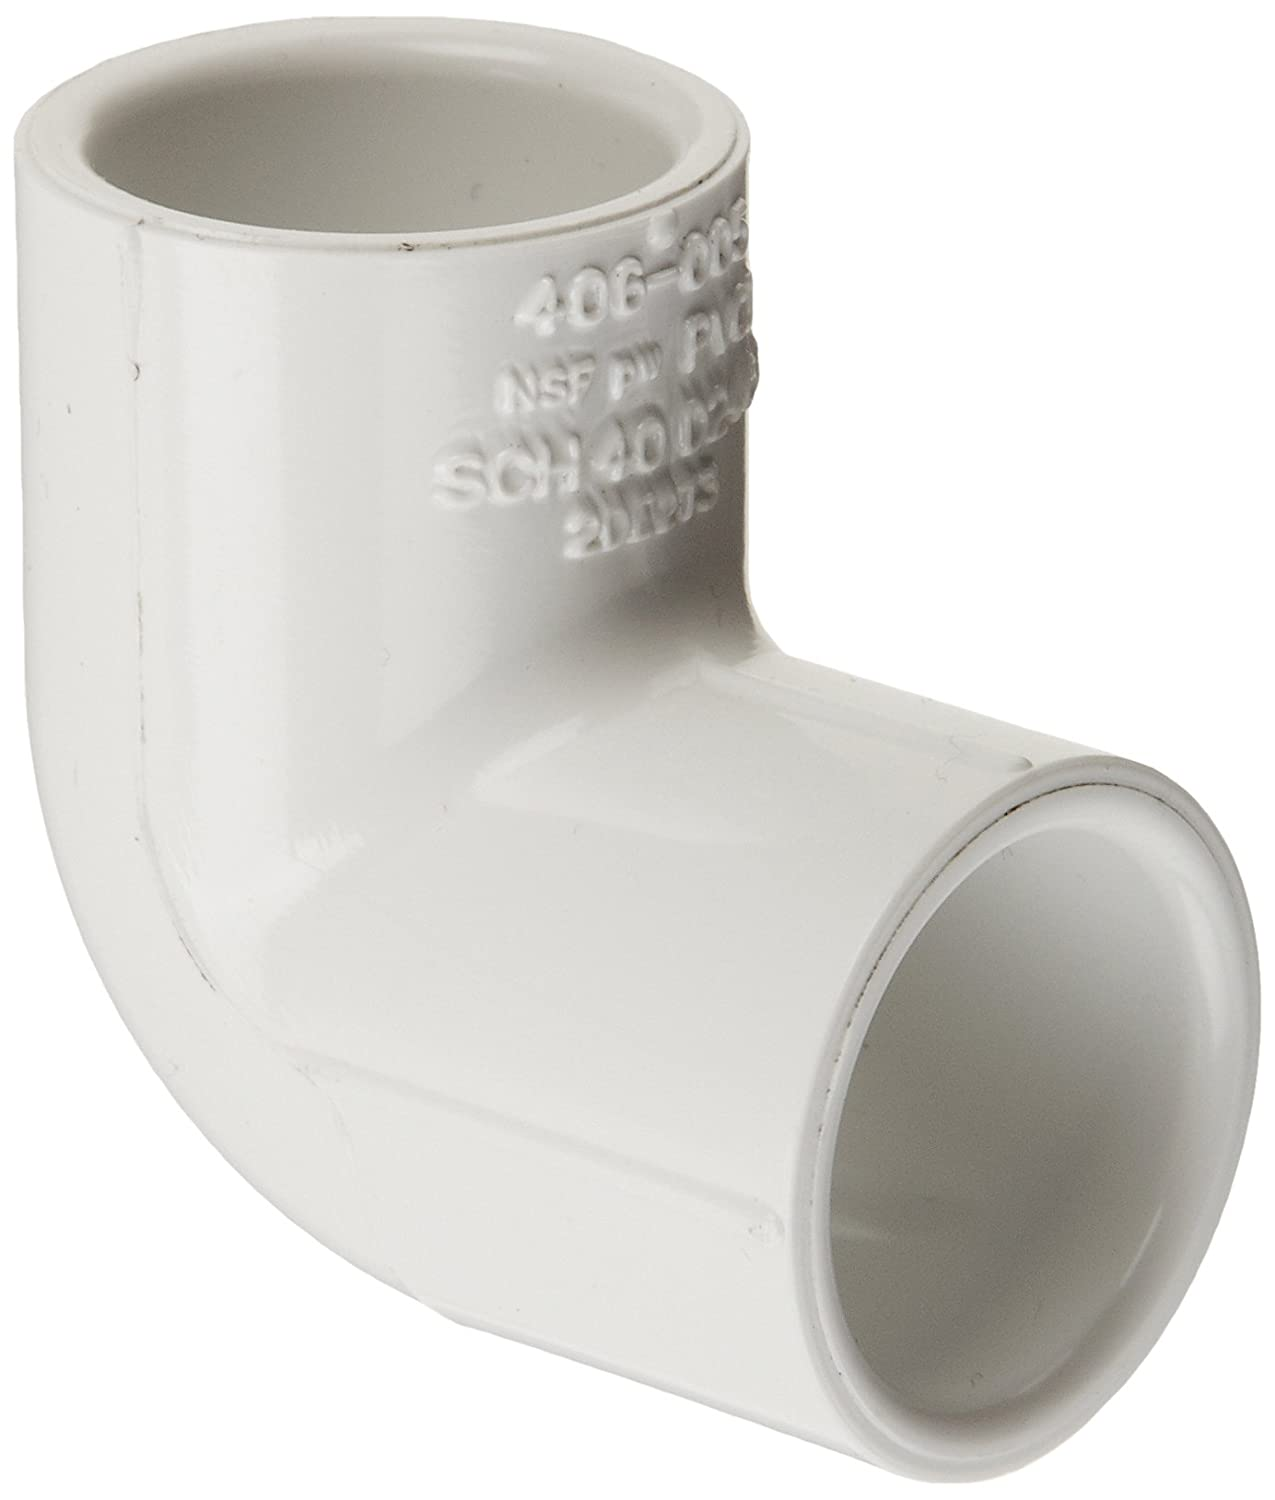 Spears 406 Series PVC Pipe Fitting, 90 Degree Elbow, Schedule 40, White, 1-1/2 x 1 Socket 1-1/2 x 1 Socket Spears Manufacturing